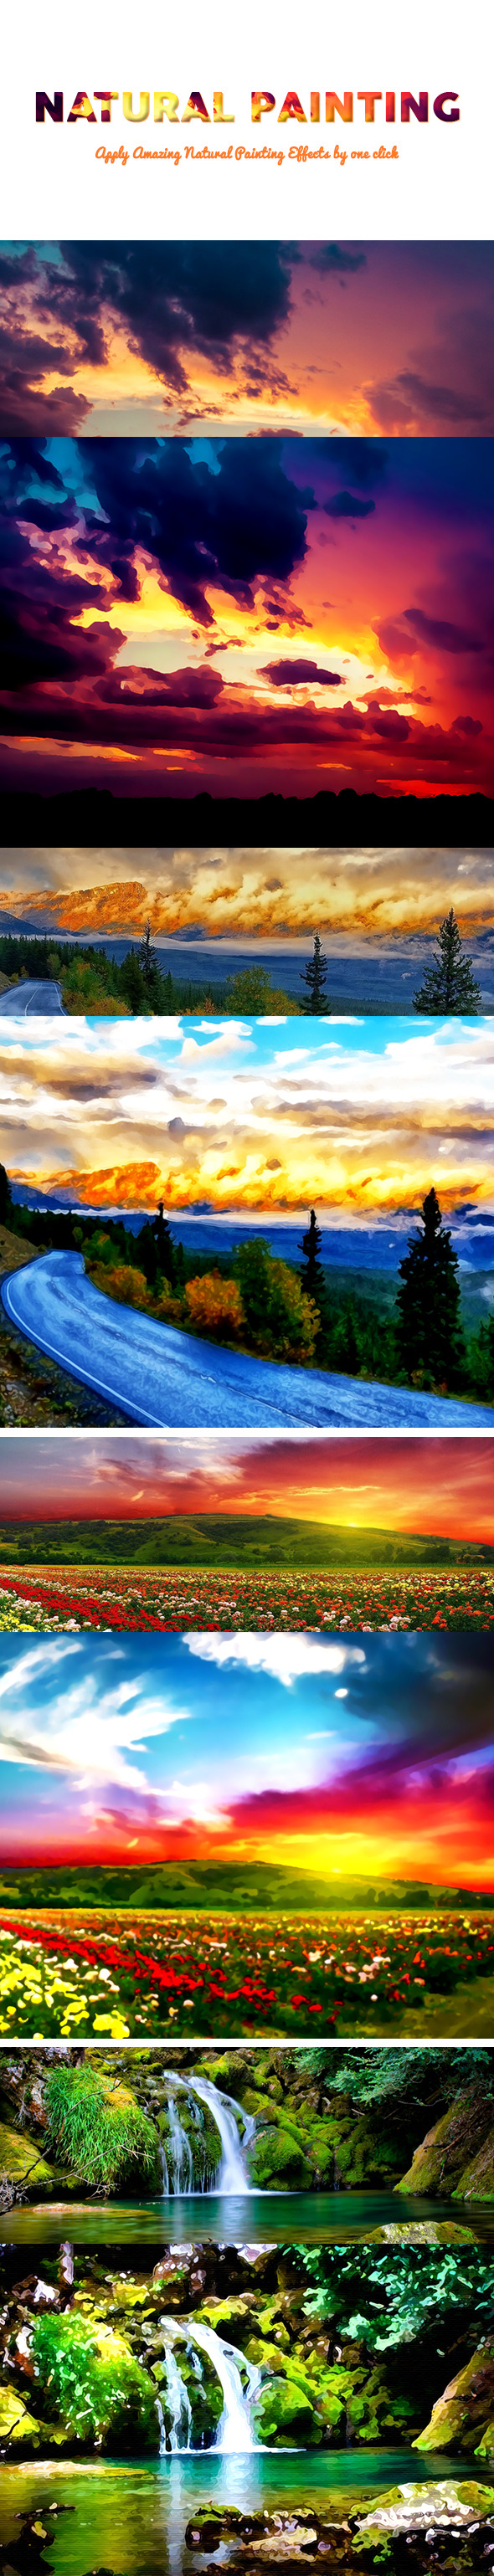 Natural Painting - Photo Effects Actions